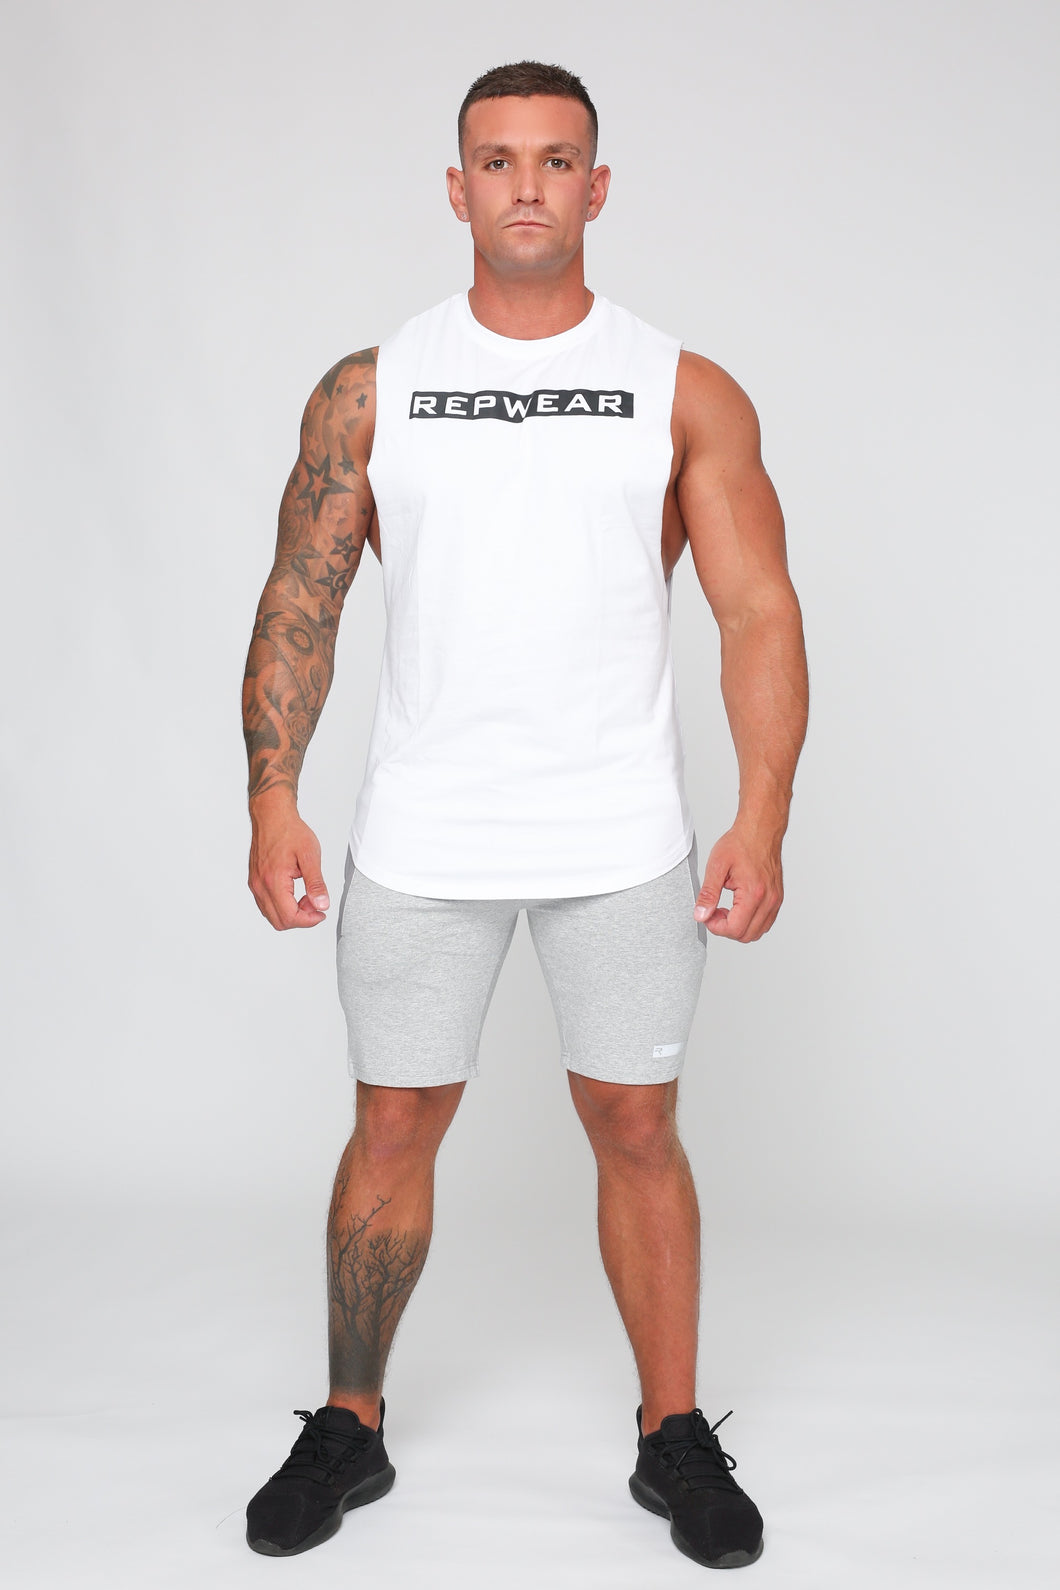 Repwear Fitness Signature Sleeveless T-Shirt White